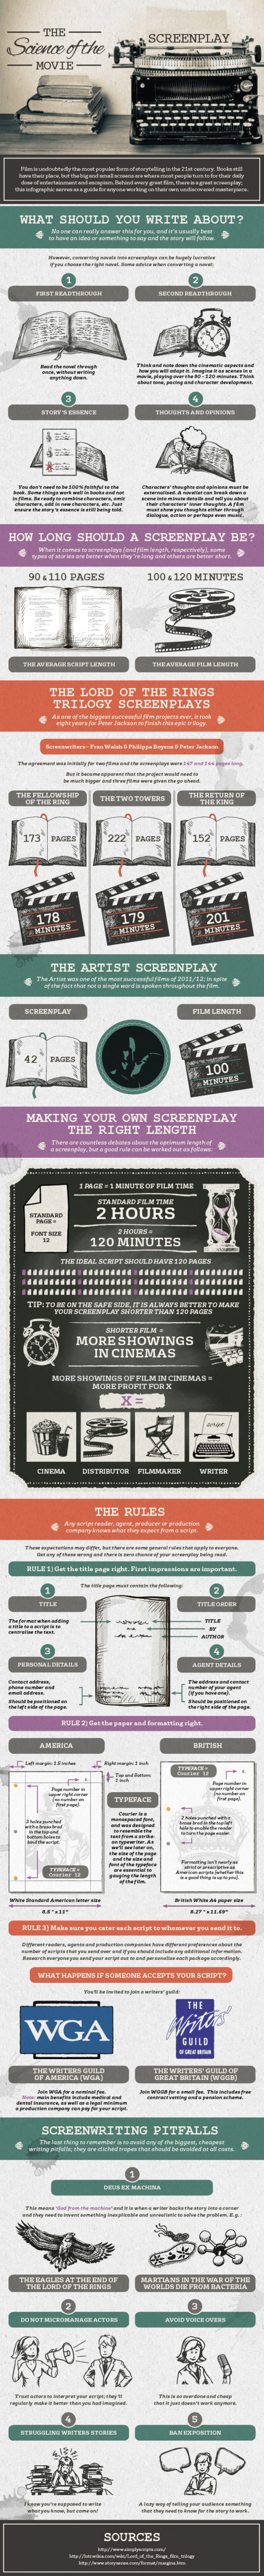 Everything You Need To Know To Start Writing a Killer Screenplay In One Infographic